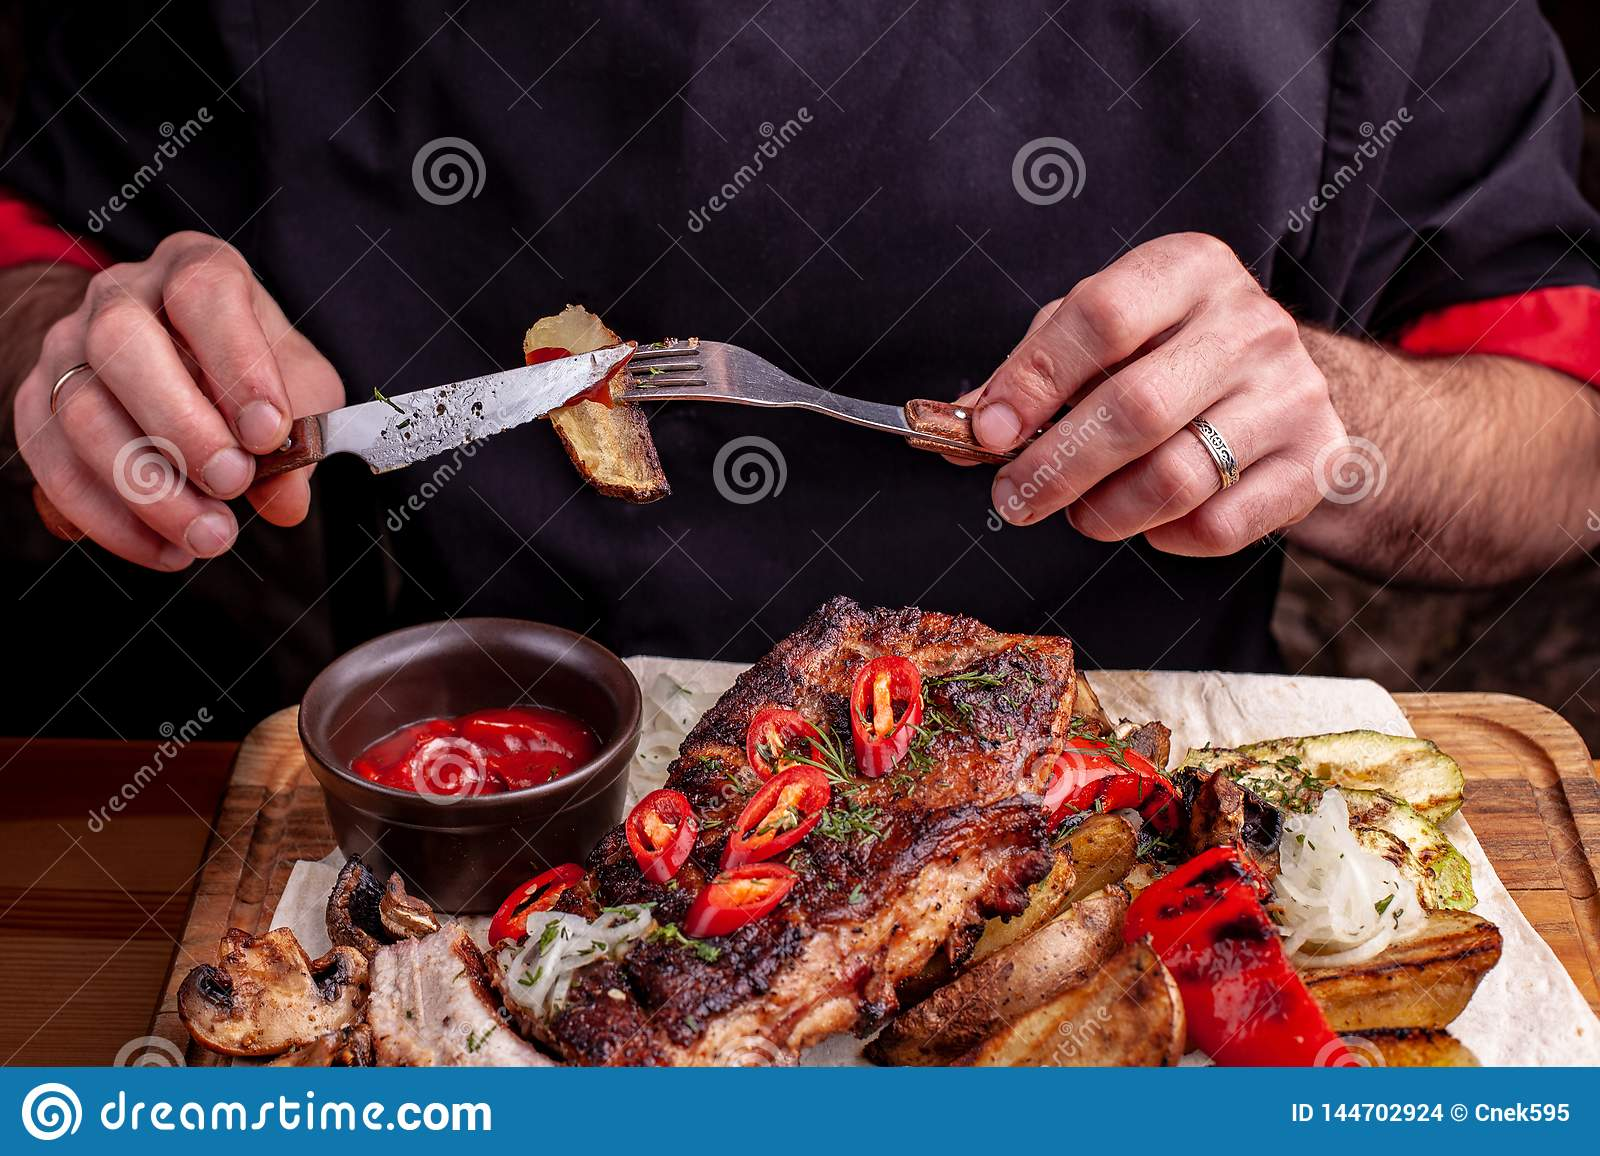 Delicious barbecued ribs seasoned with fresh herbs, cabbage salad, backed potato on an old rustic wooden chopping board